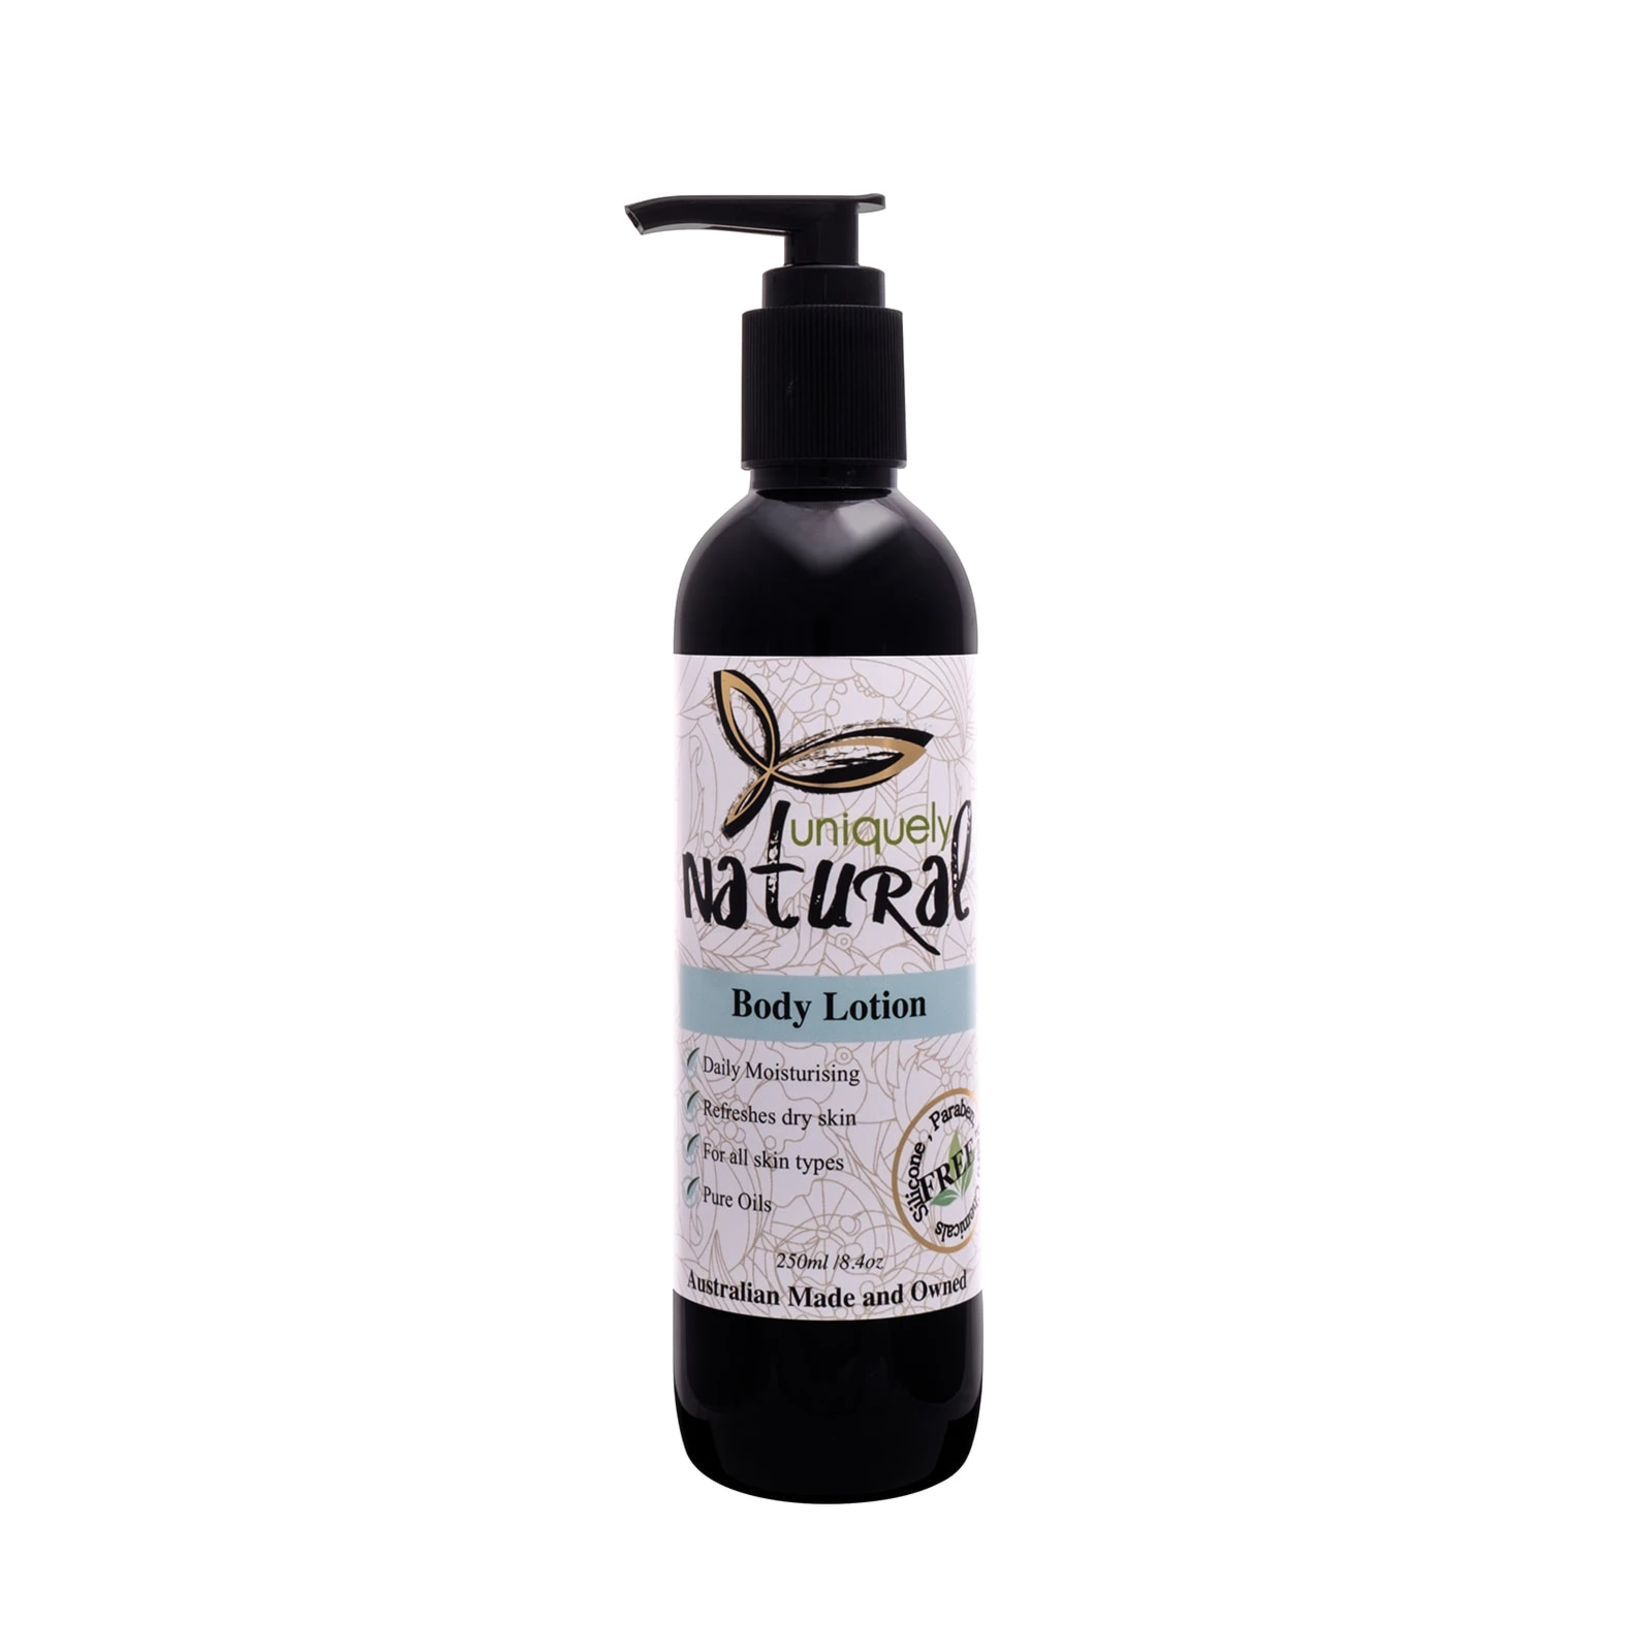 Uniquely Natural Uniquely Natural Body Lotion 250ml